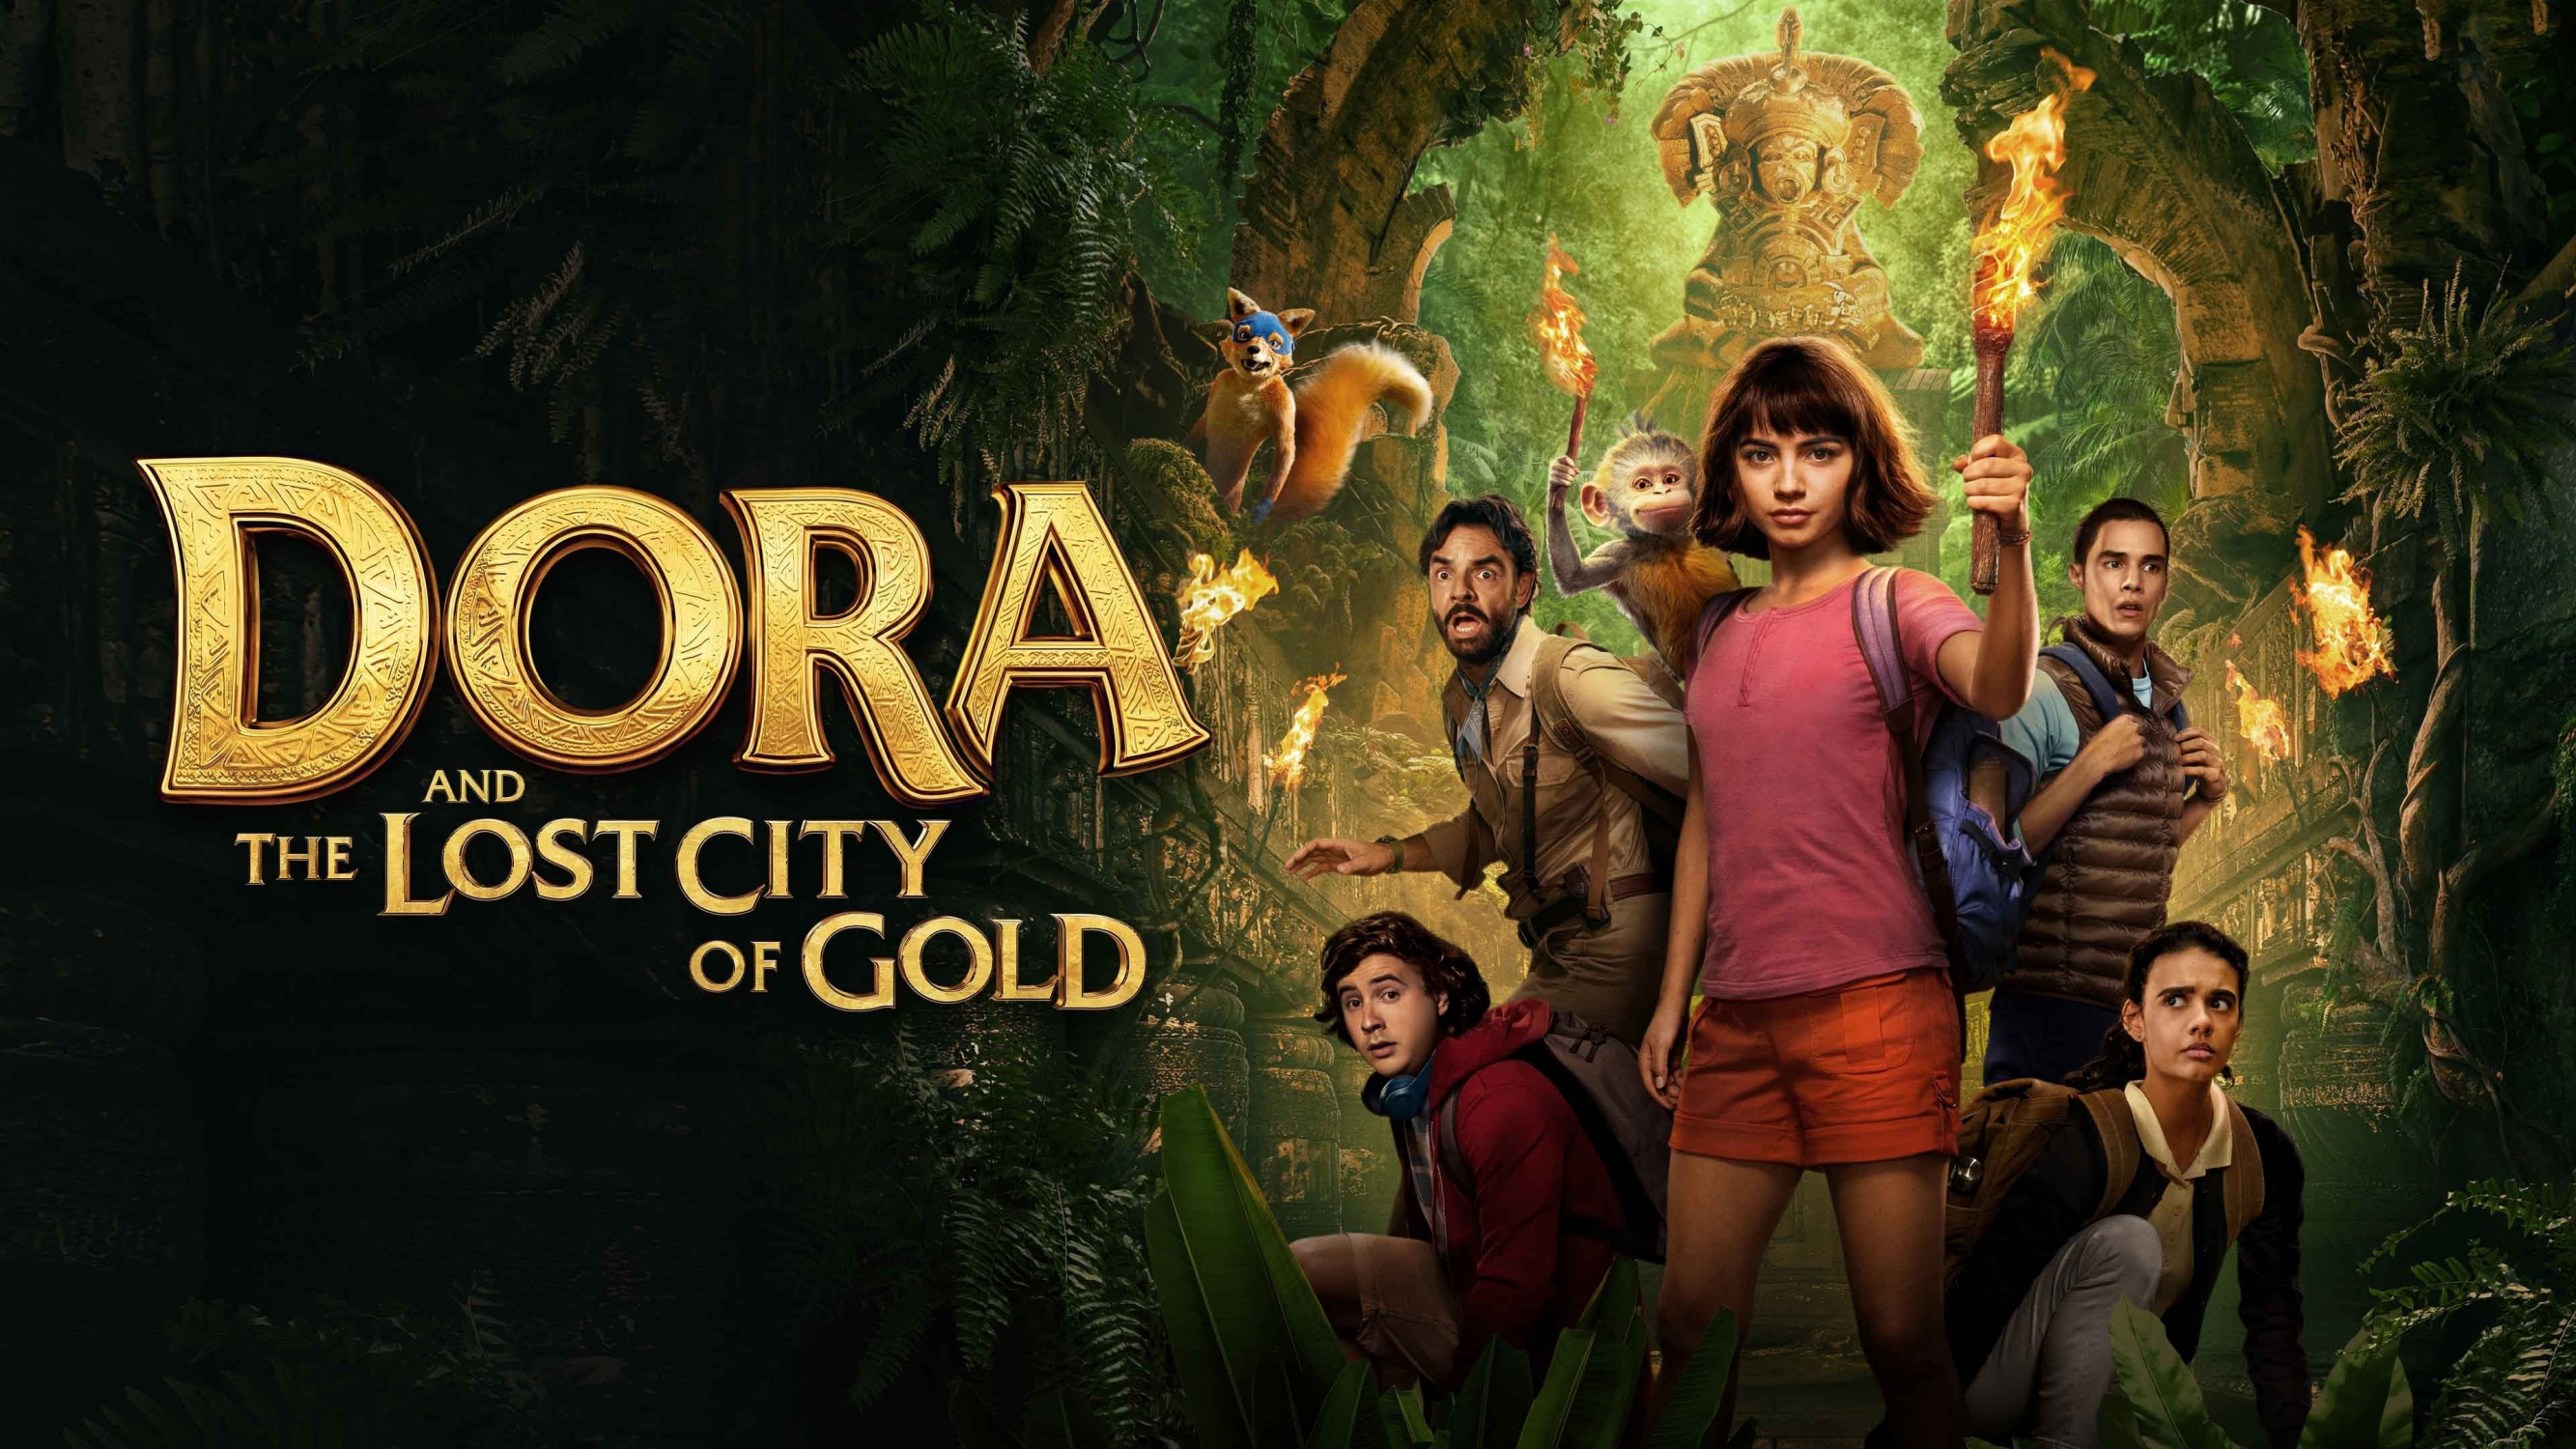 Image result for dora and the lost city of gold poster